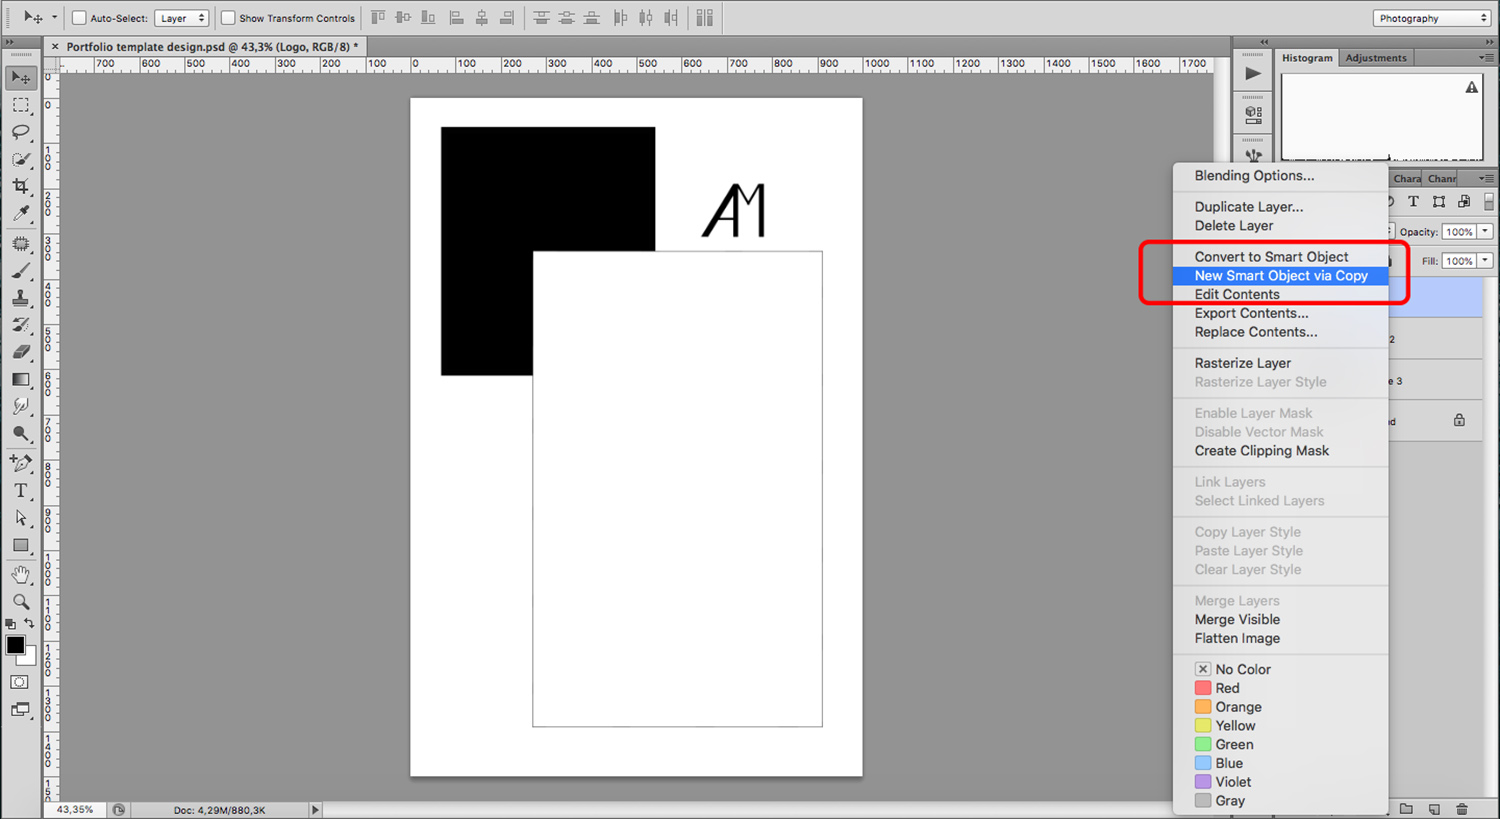 Create a portfolio template with logo